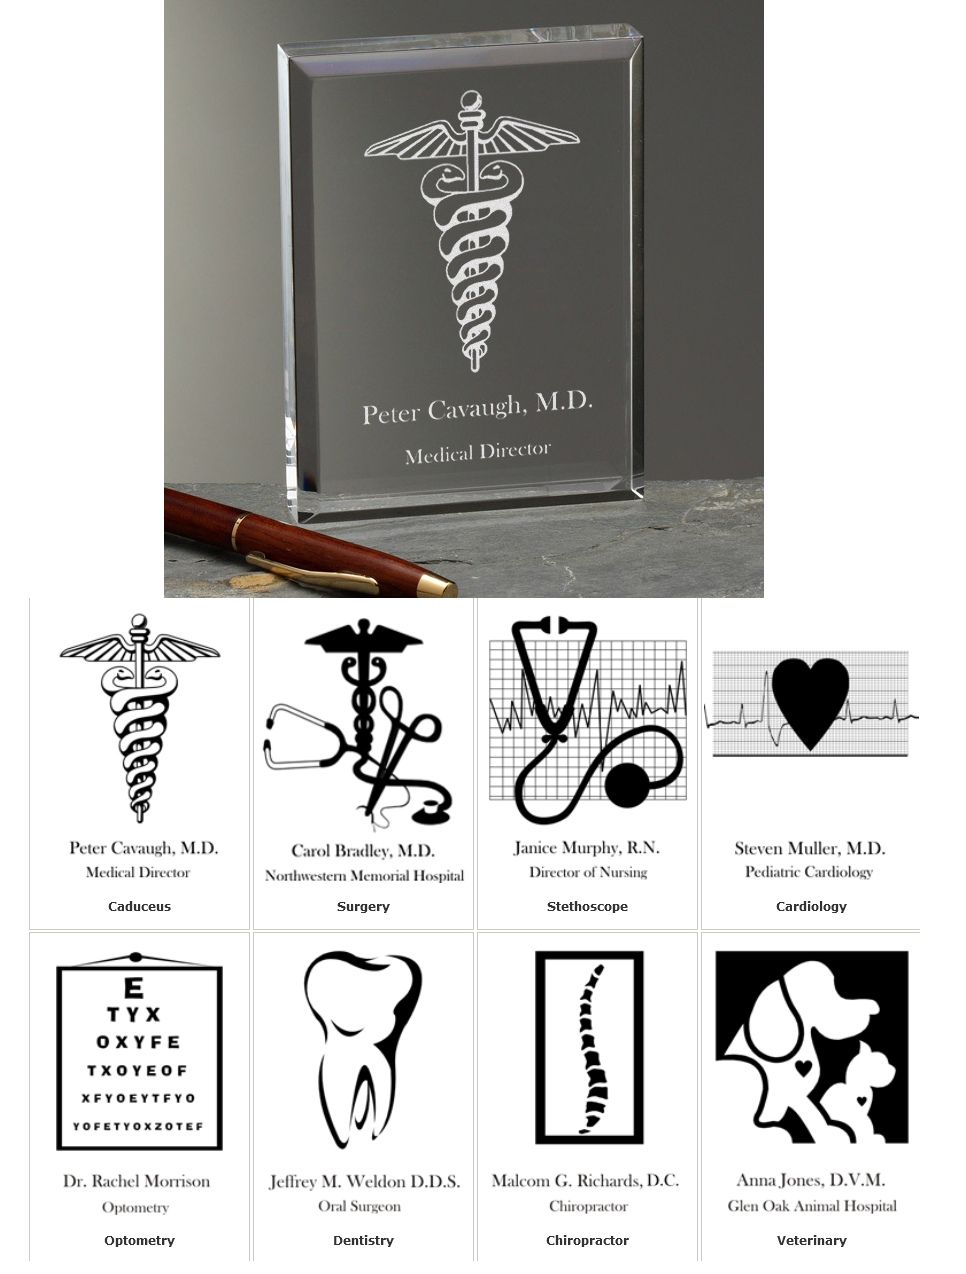 medial specialty paperweight choose from 8 medical specialties and personalize it with any 2 lines for only 1995 great gift idea for new doctor